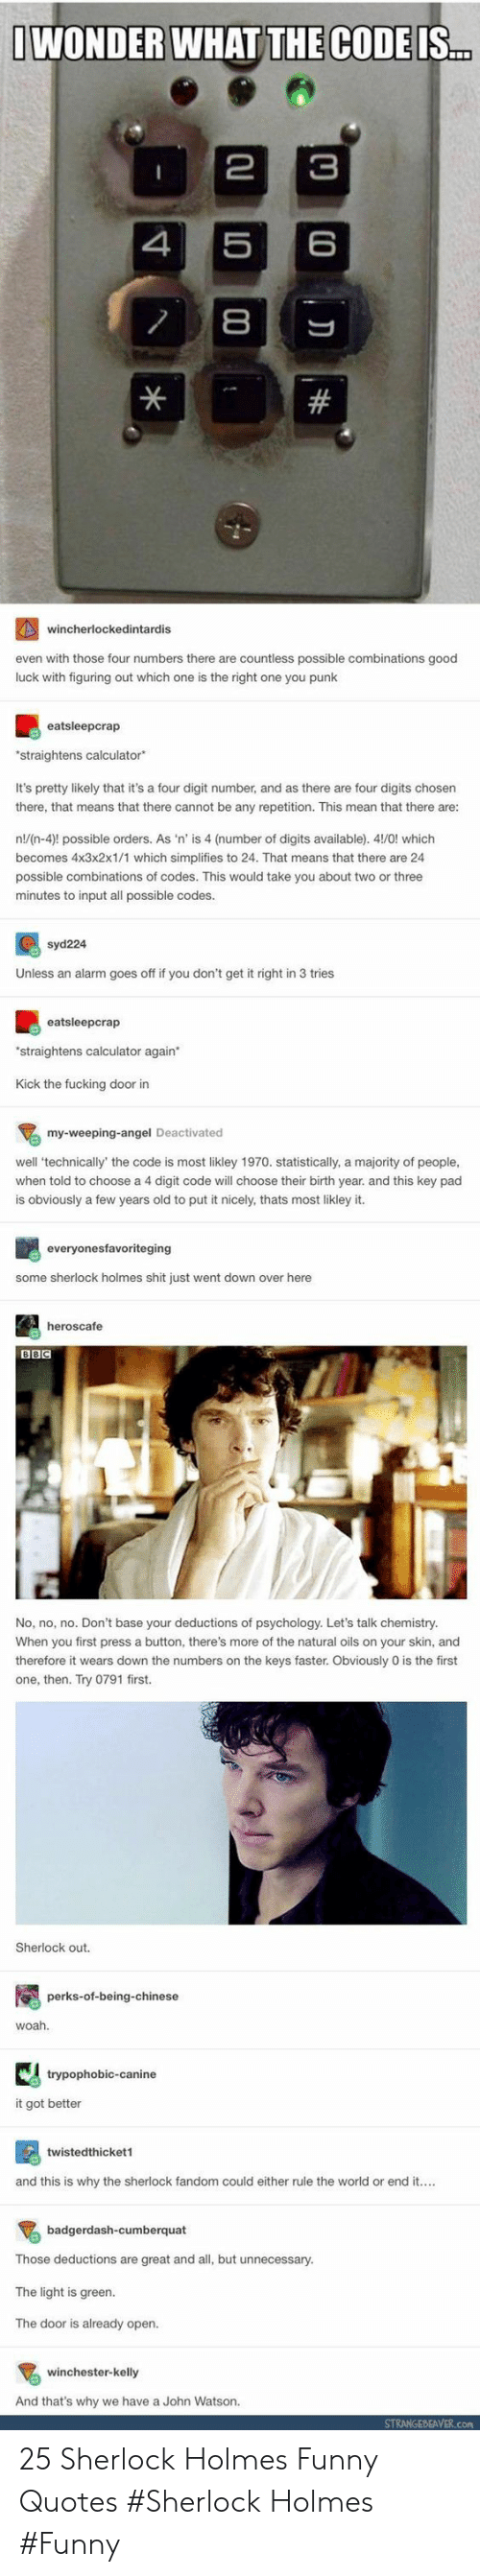 Fucking, Funny, and Sherlock Holmes: IWONDER WHAT THE CODE IS.  3  5  4  #  4wincherlockedintardis  even with those four numbers there are countless possible combinations good  luck with figuring out which one is the right one you punk  eatsleepcrap  straightens calculator  It's pretty likely that it's a four digit number, and as there are four digits chosen  there, that means that there cannot be any repetition. This mean that there are:  n!/(n-4)! possible orders. As 'n' is 4 (number of digits available). 41/0! which  becomes 4x3x2x1/1 which simplifies to 24. That means that there are 24  possible combinations of codes. This would take you about two or three  minutes to input all possible codes.  syd224  Unless an alarm goes off if you don't get it right in 3 tries  eatsleepcrap  straightens calculator again  Kick the fucking door in  my-weeping-angel Deactivated  well 'technically' the code is most likley 1970. statistically, a majority of people,  when told to choose a 4 digit code will choose their birth year. and this key pad  is obviously a few years old to put it nicely, thats most likley it  everyonesfavoriteging  some sherlock holmes shit just went down over here  heroscafe  BBC  No, no, no. Don't base your deductions of psychology. Let's talk chemistry.  When you first press a button, there's more of the natural oils on your skin, and  therefore it wears down the numbers on the keys faster. Obviously 0 is the first  one, then. Try 0791 first.  Sherlock out.  perks-of-being-chinese  woah.  trypophobic-canine  it got better  twistedthicket1  and this is why the sherlock fandom could either rule the world or end it..  badgerdash-cumberquat  Those deductions are great and all, but unnecessary.  The light is green.  The door is already open.  winchester-kelly  And that's why we have a John Watson.  STRANGEBEAVER.com  C0 D  00  * 25 Sherlock Holmes Funny Quotes #Sherlock Holmes #Funny